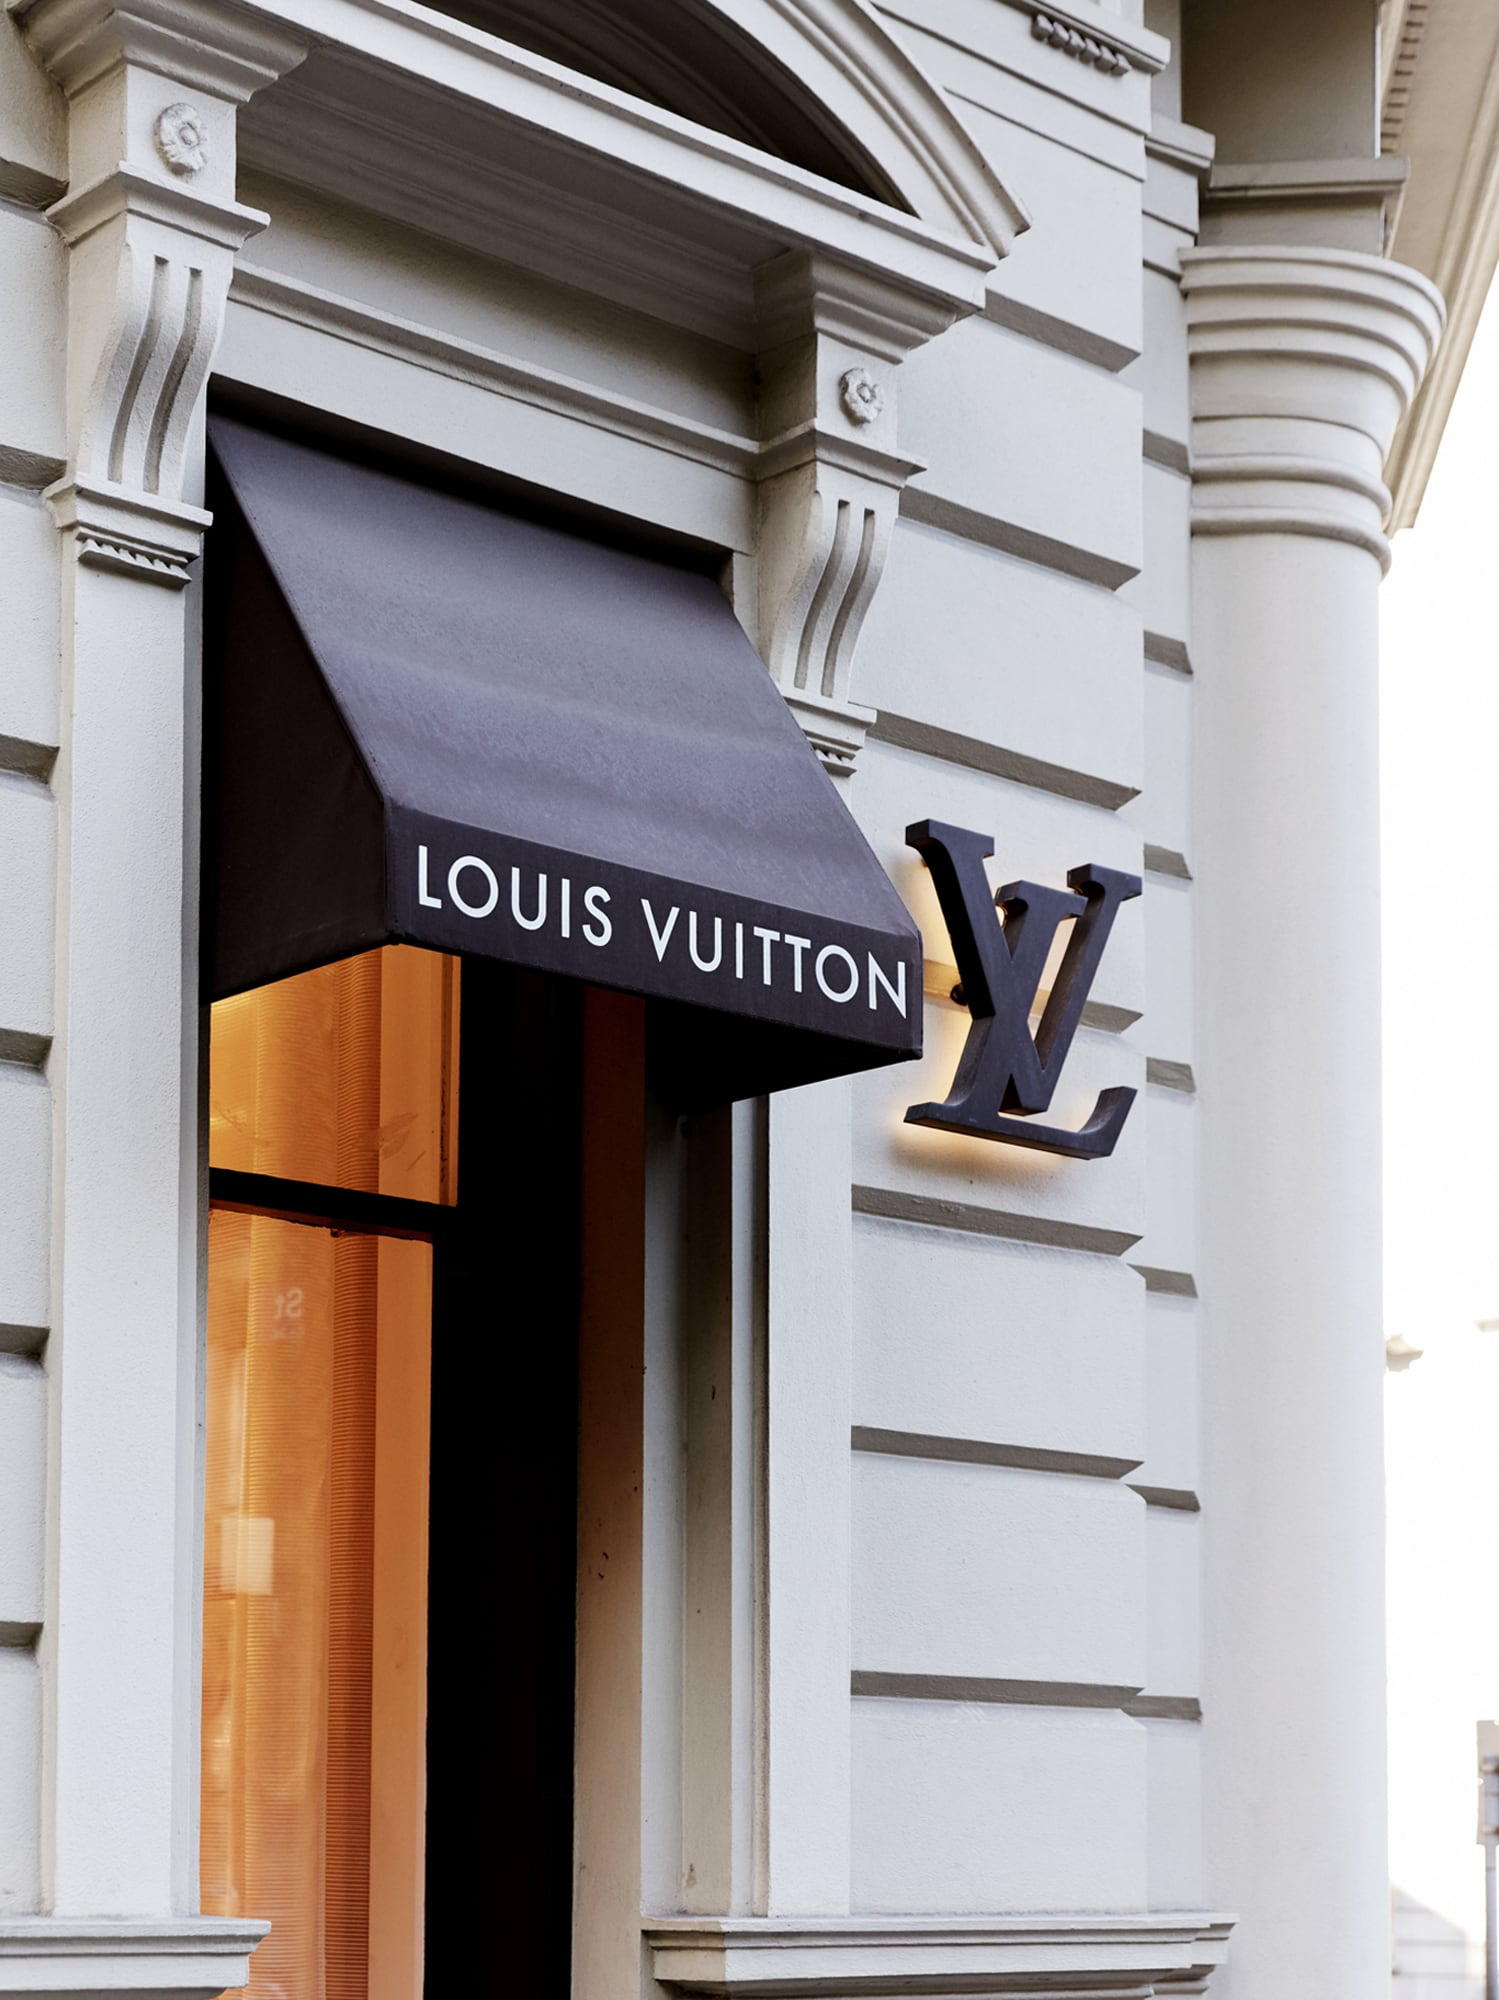 Louis Vuitton, Collins Street